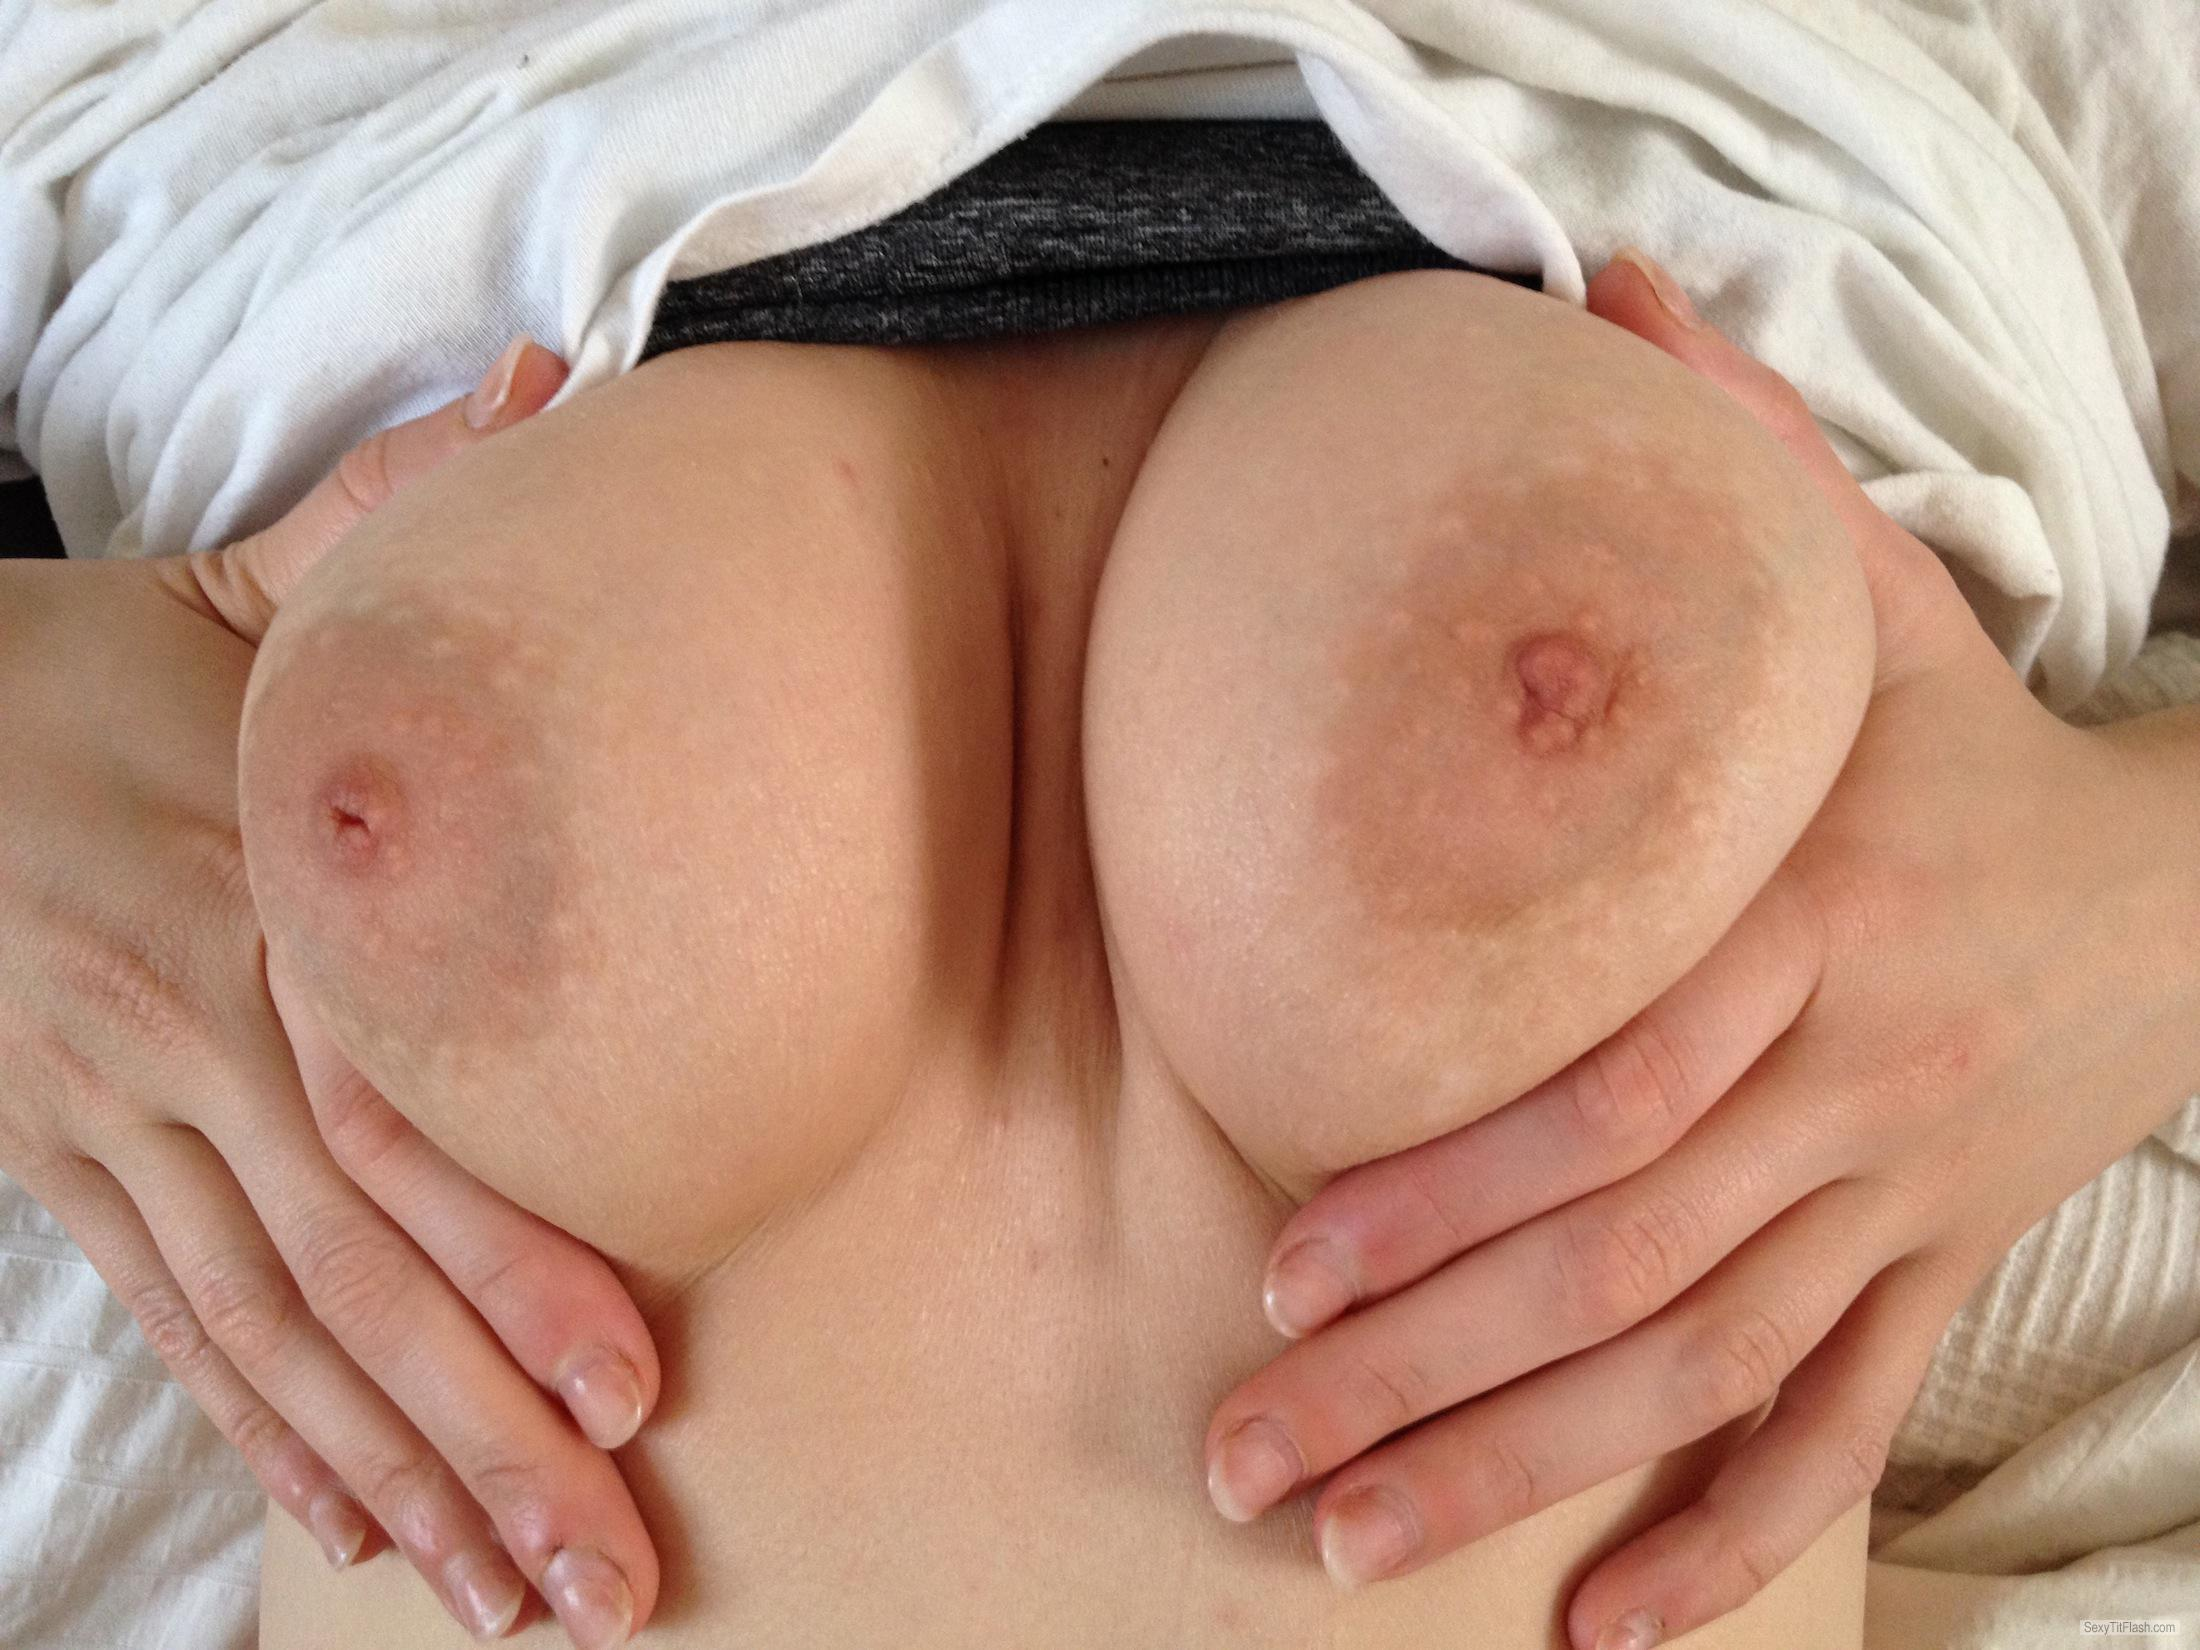 Tit Flash: My Medium Tits - SSV from United States